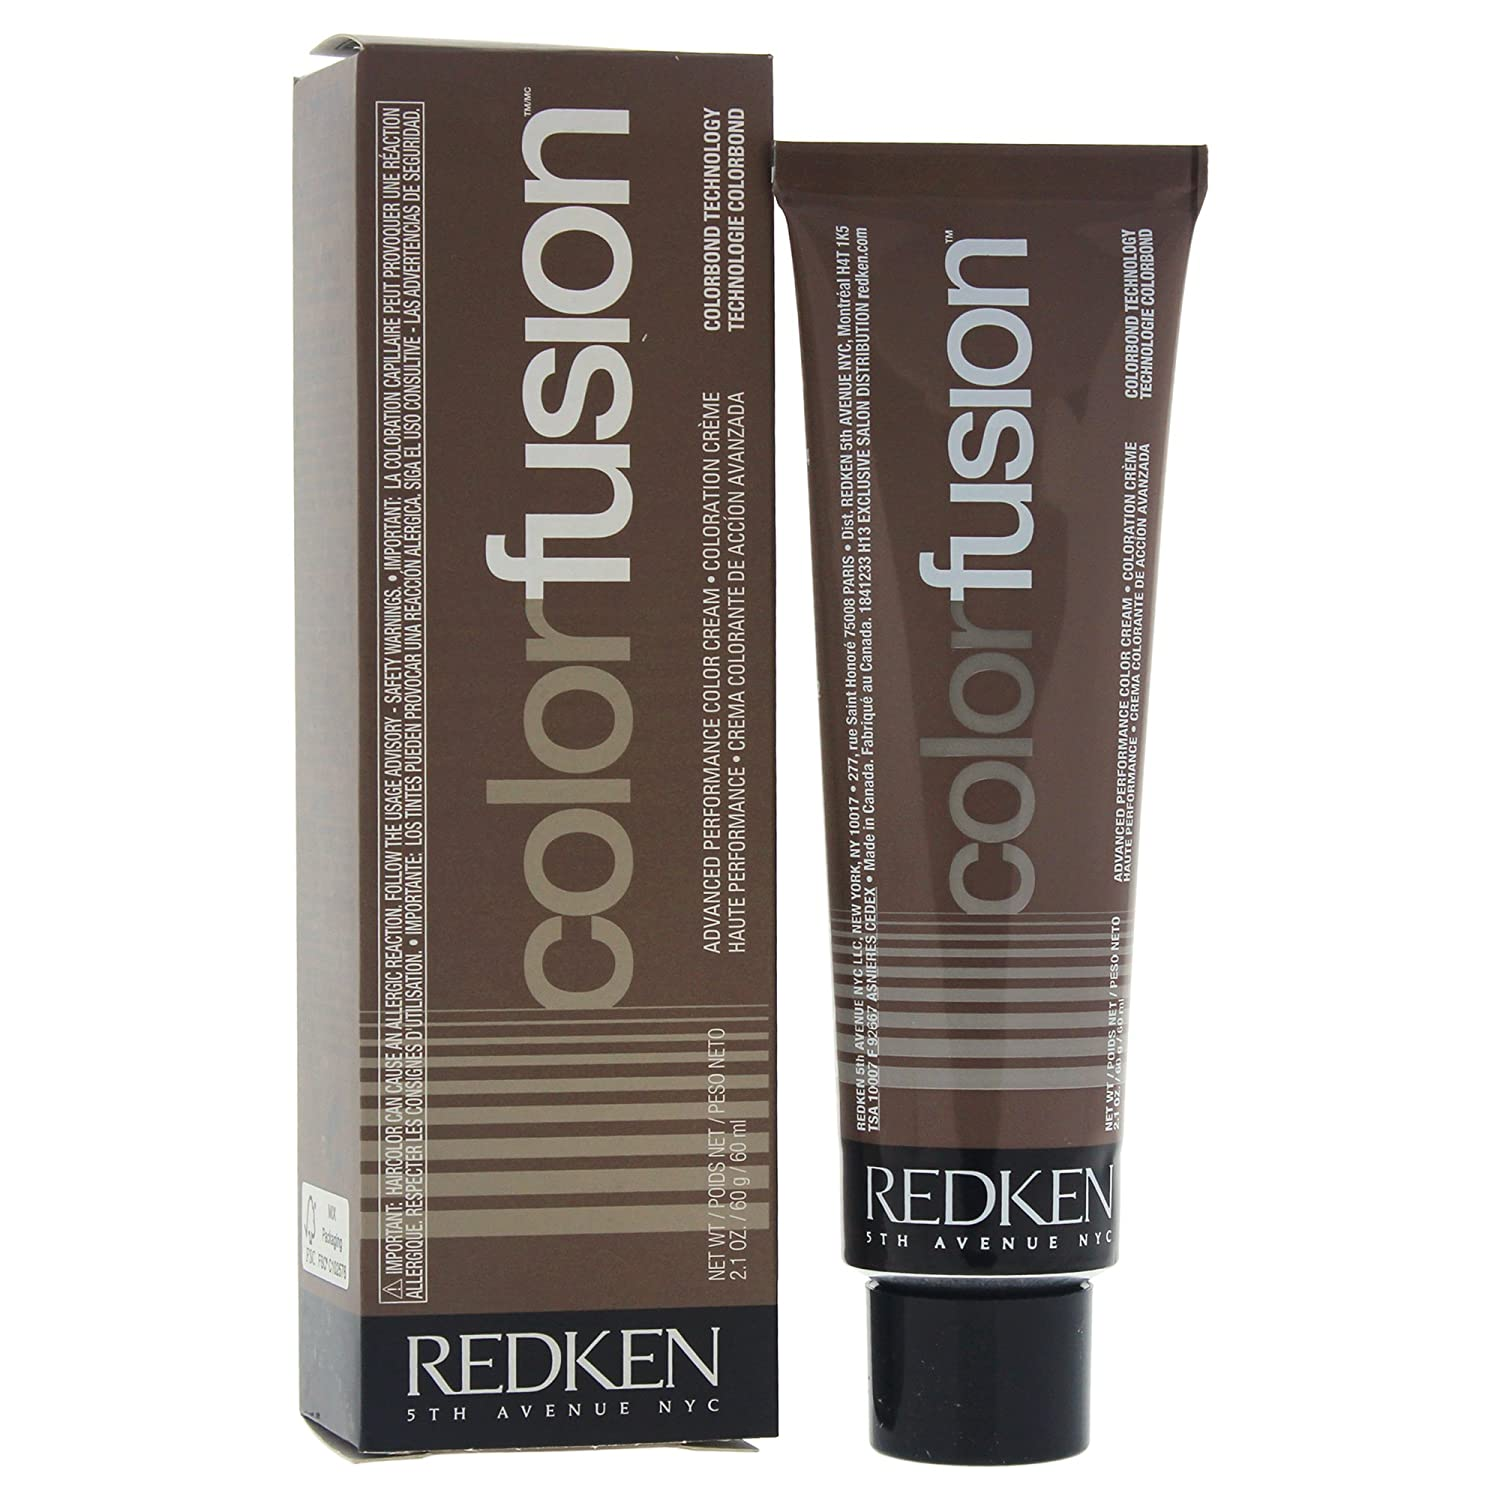 Redken Color Fusion Cream Natural Balance Hair Color for Unisex, No.9AGAsh/green, 2.1 Ounce